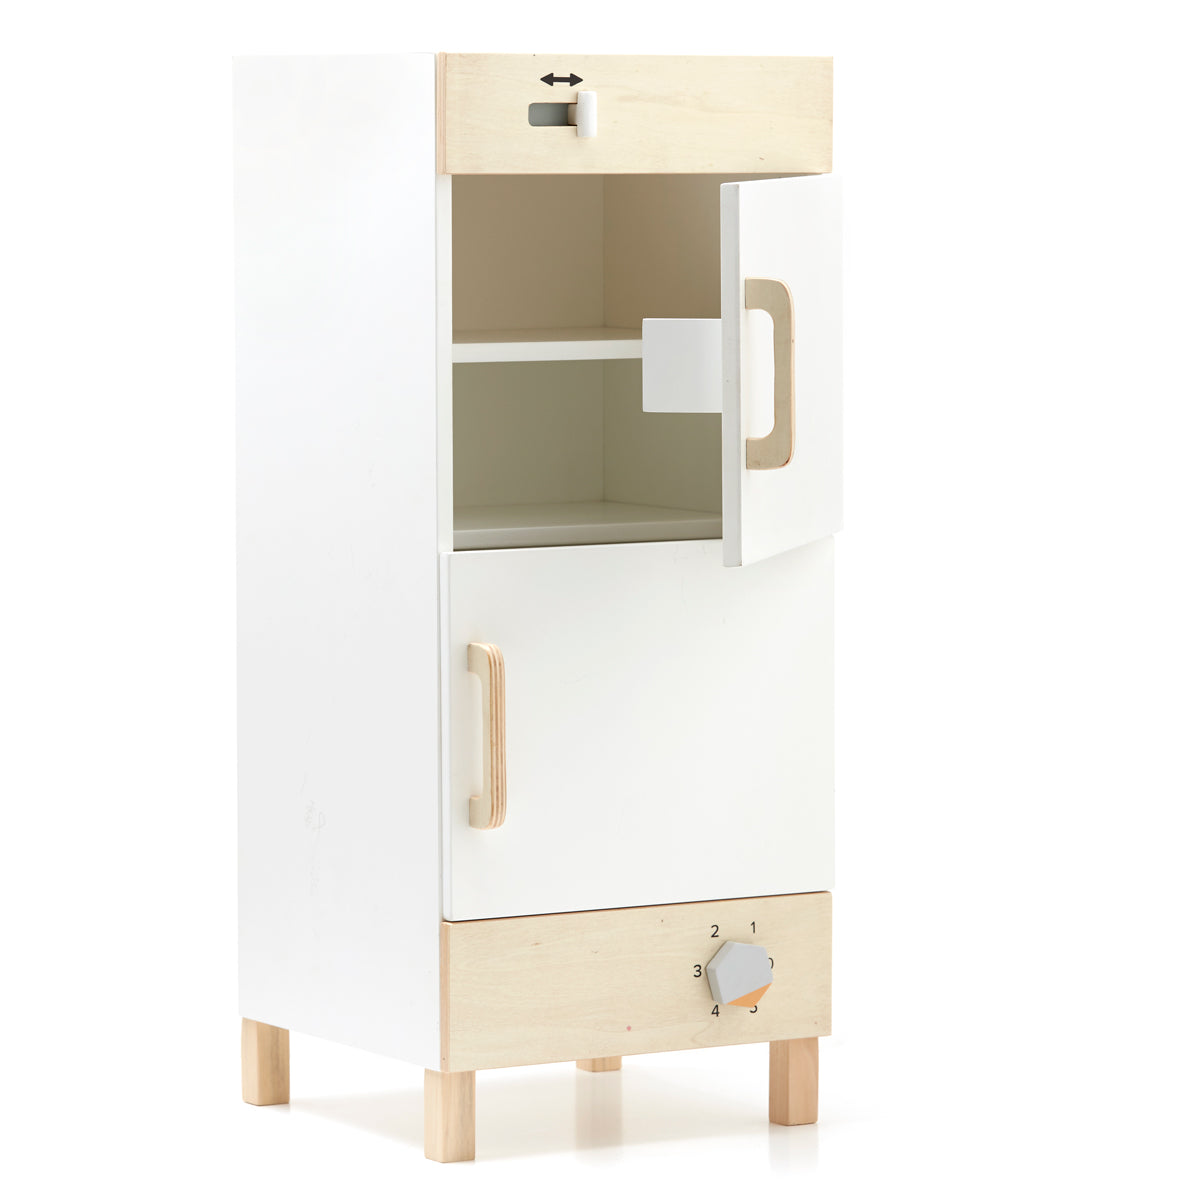 wooden fridge and freezer from kids concept